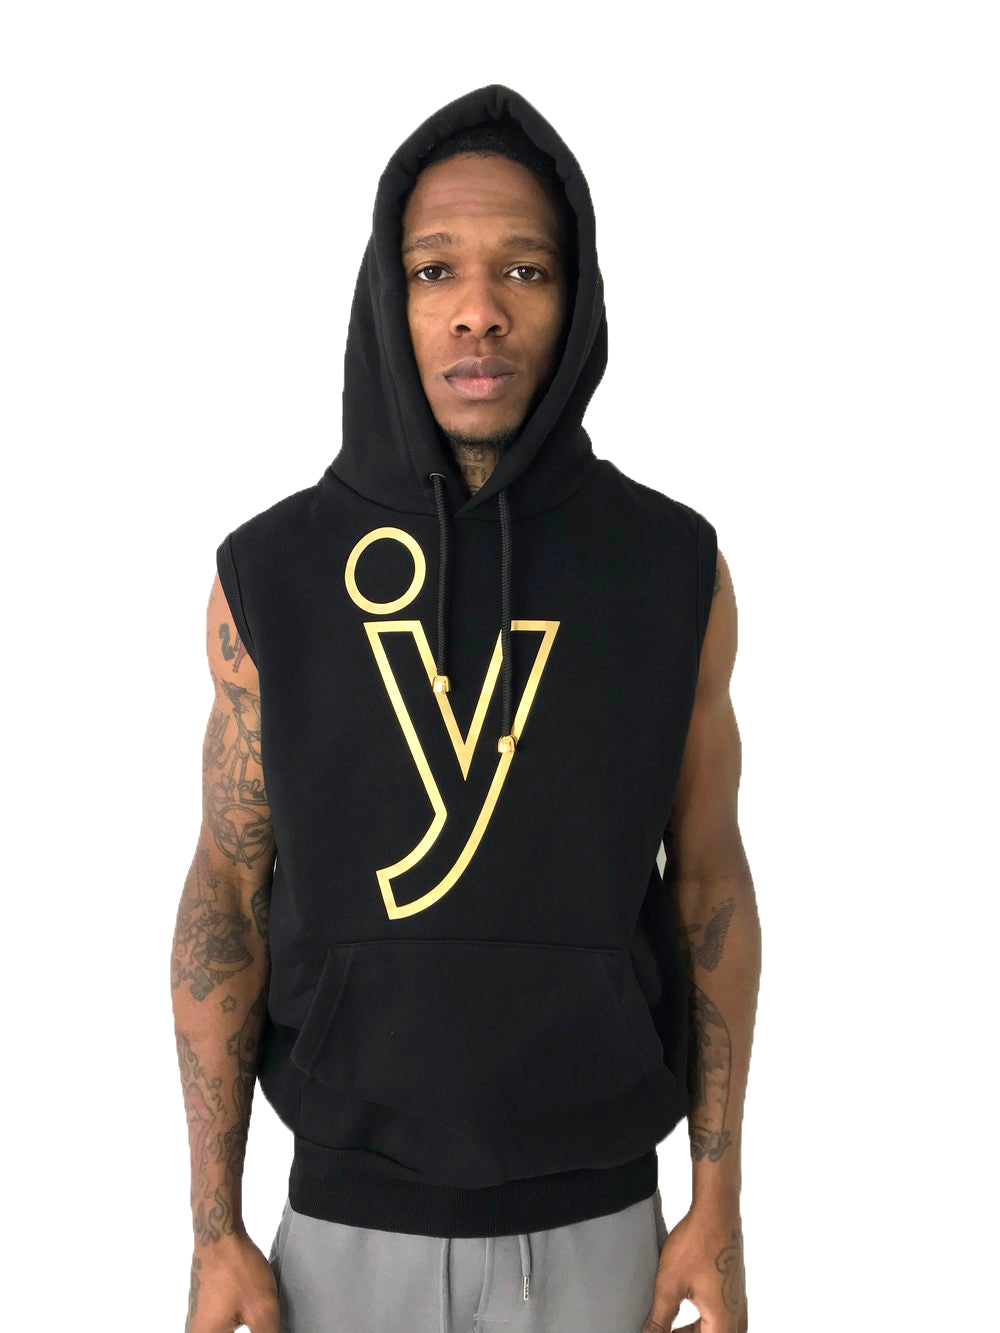 BLACK SLEEVELESS HOODIE BY IACOBBUCYOUNES ITALY